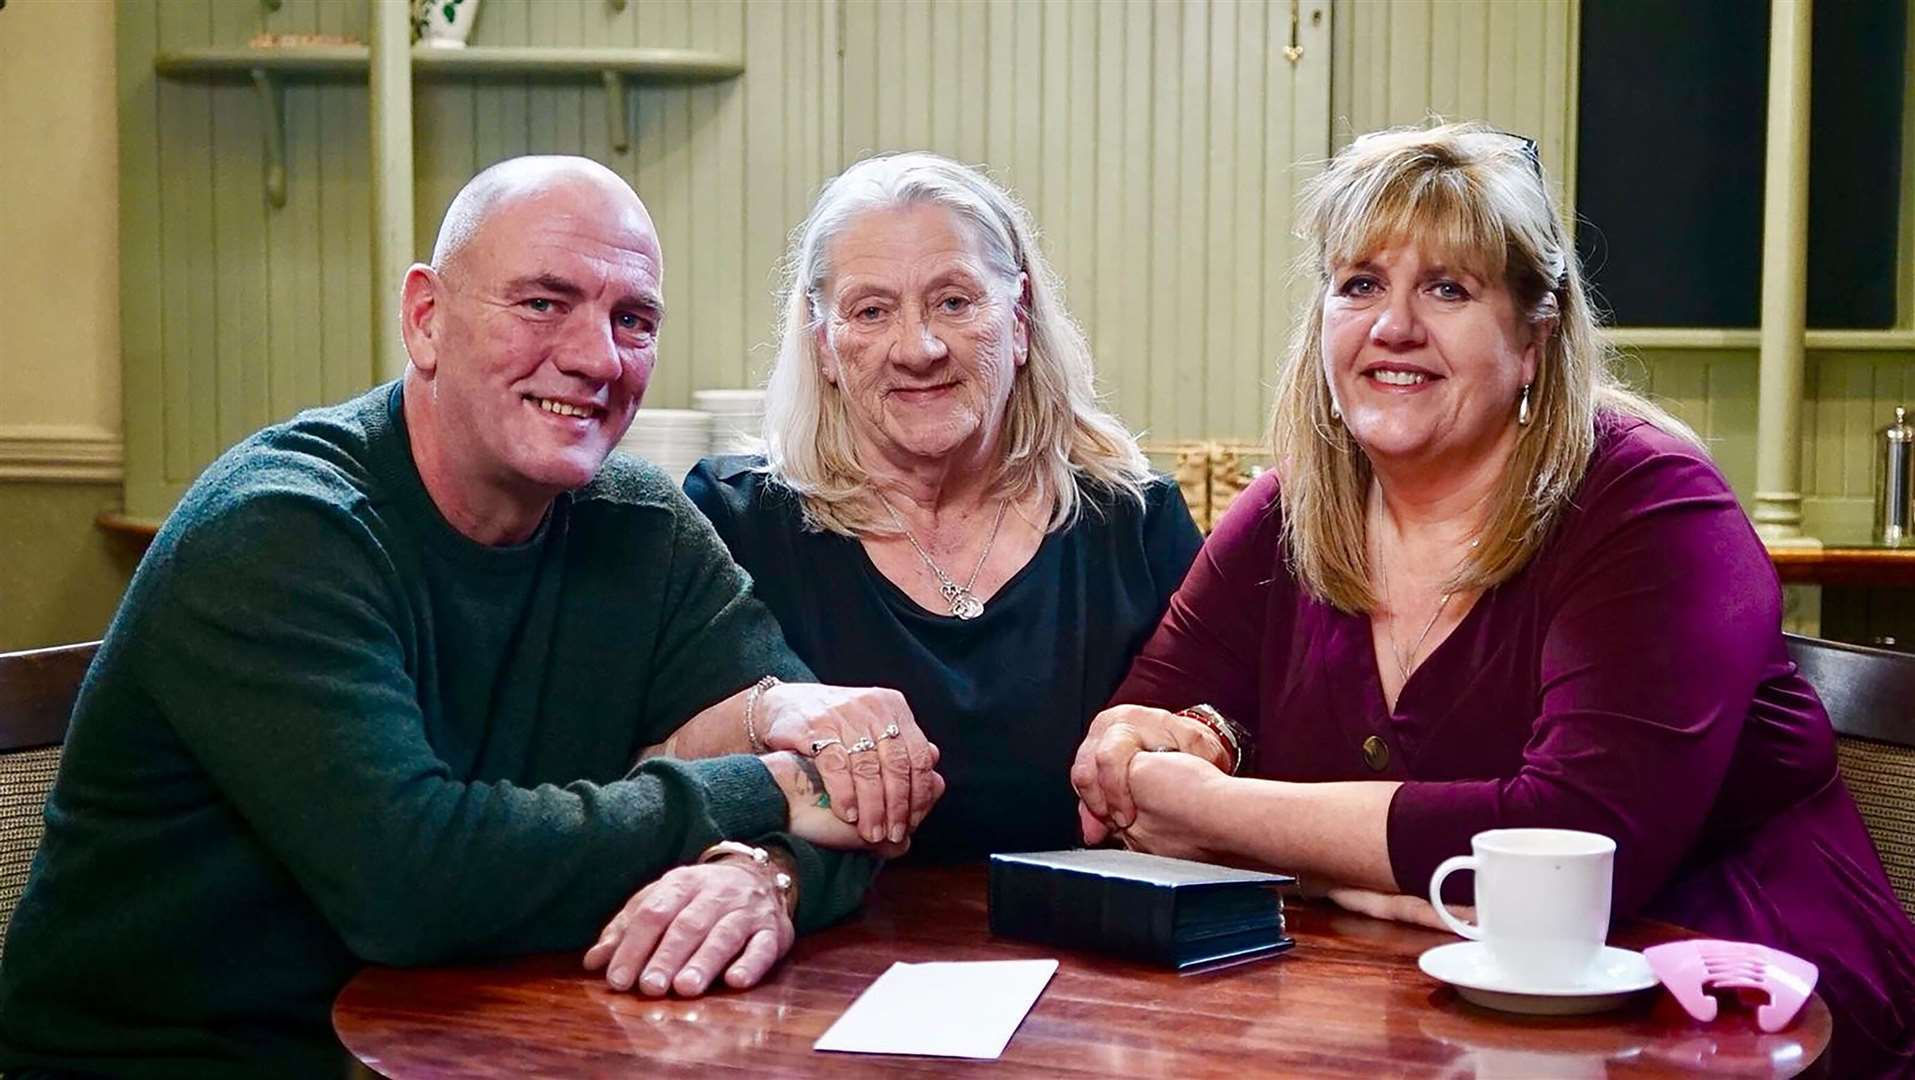 Newmarket-born Nick Rhoades is reunited with his mother Jacqueline and sister Cayley at the Rutland Arms